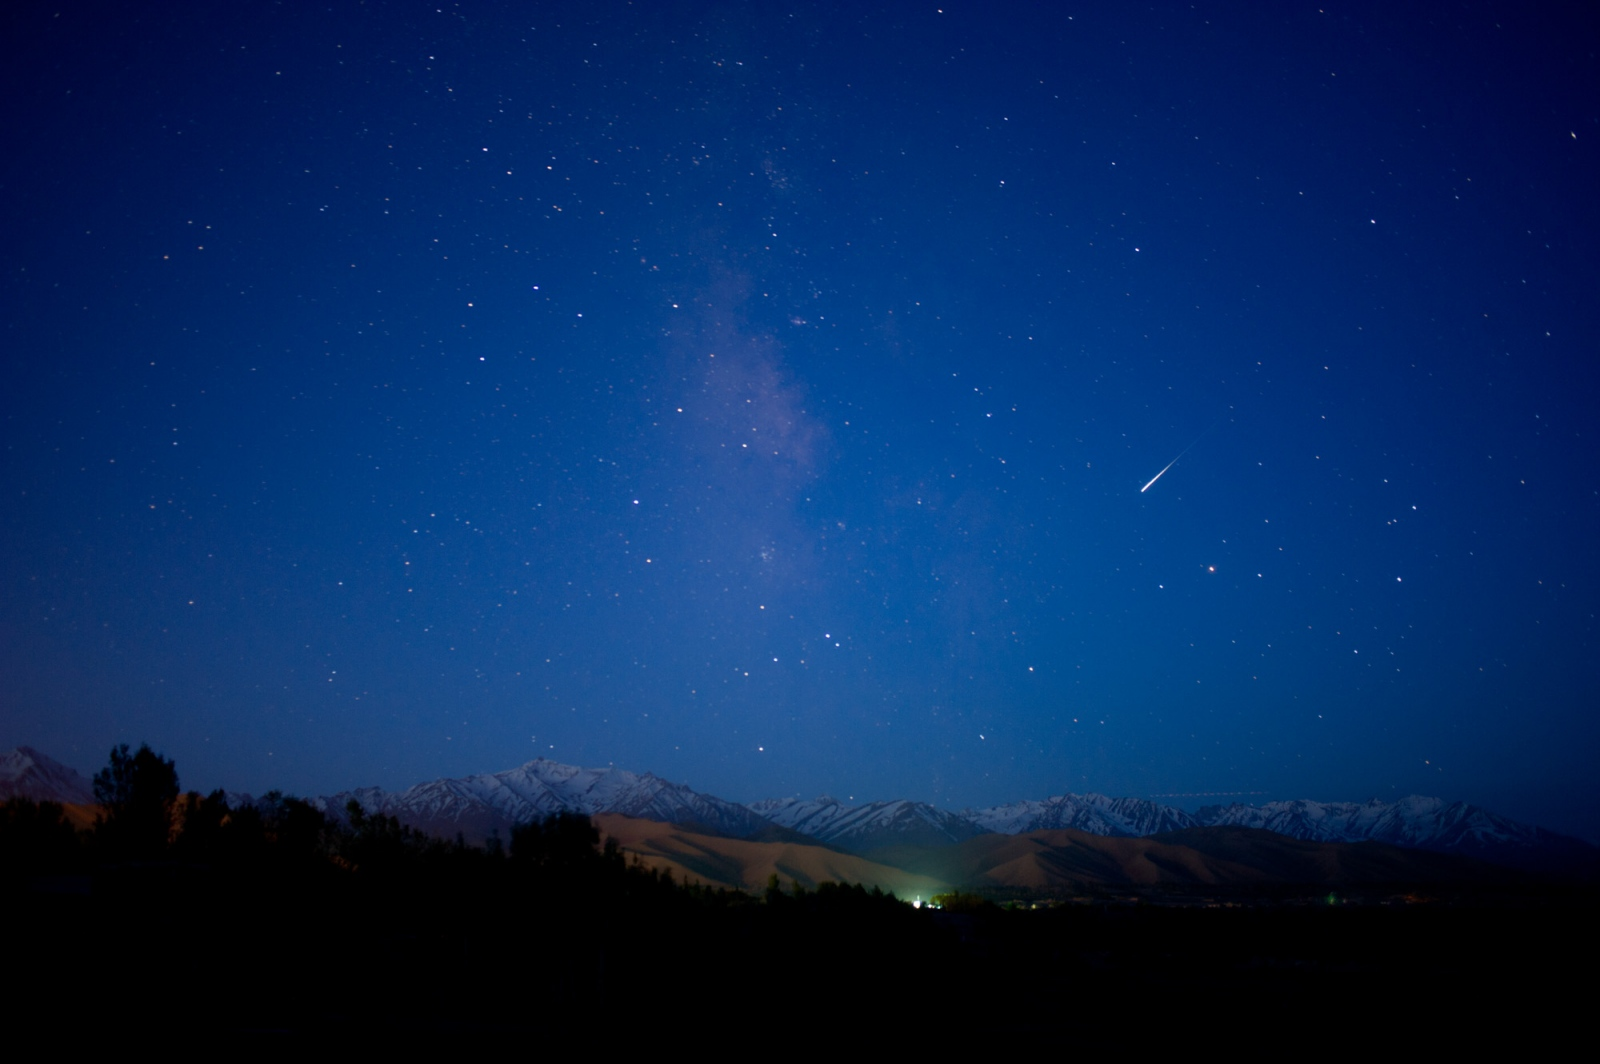 A meteor passes by a faint Milky Way over the Hindu Kush mountains in Afghanistan.